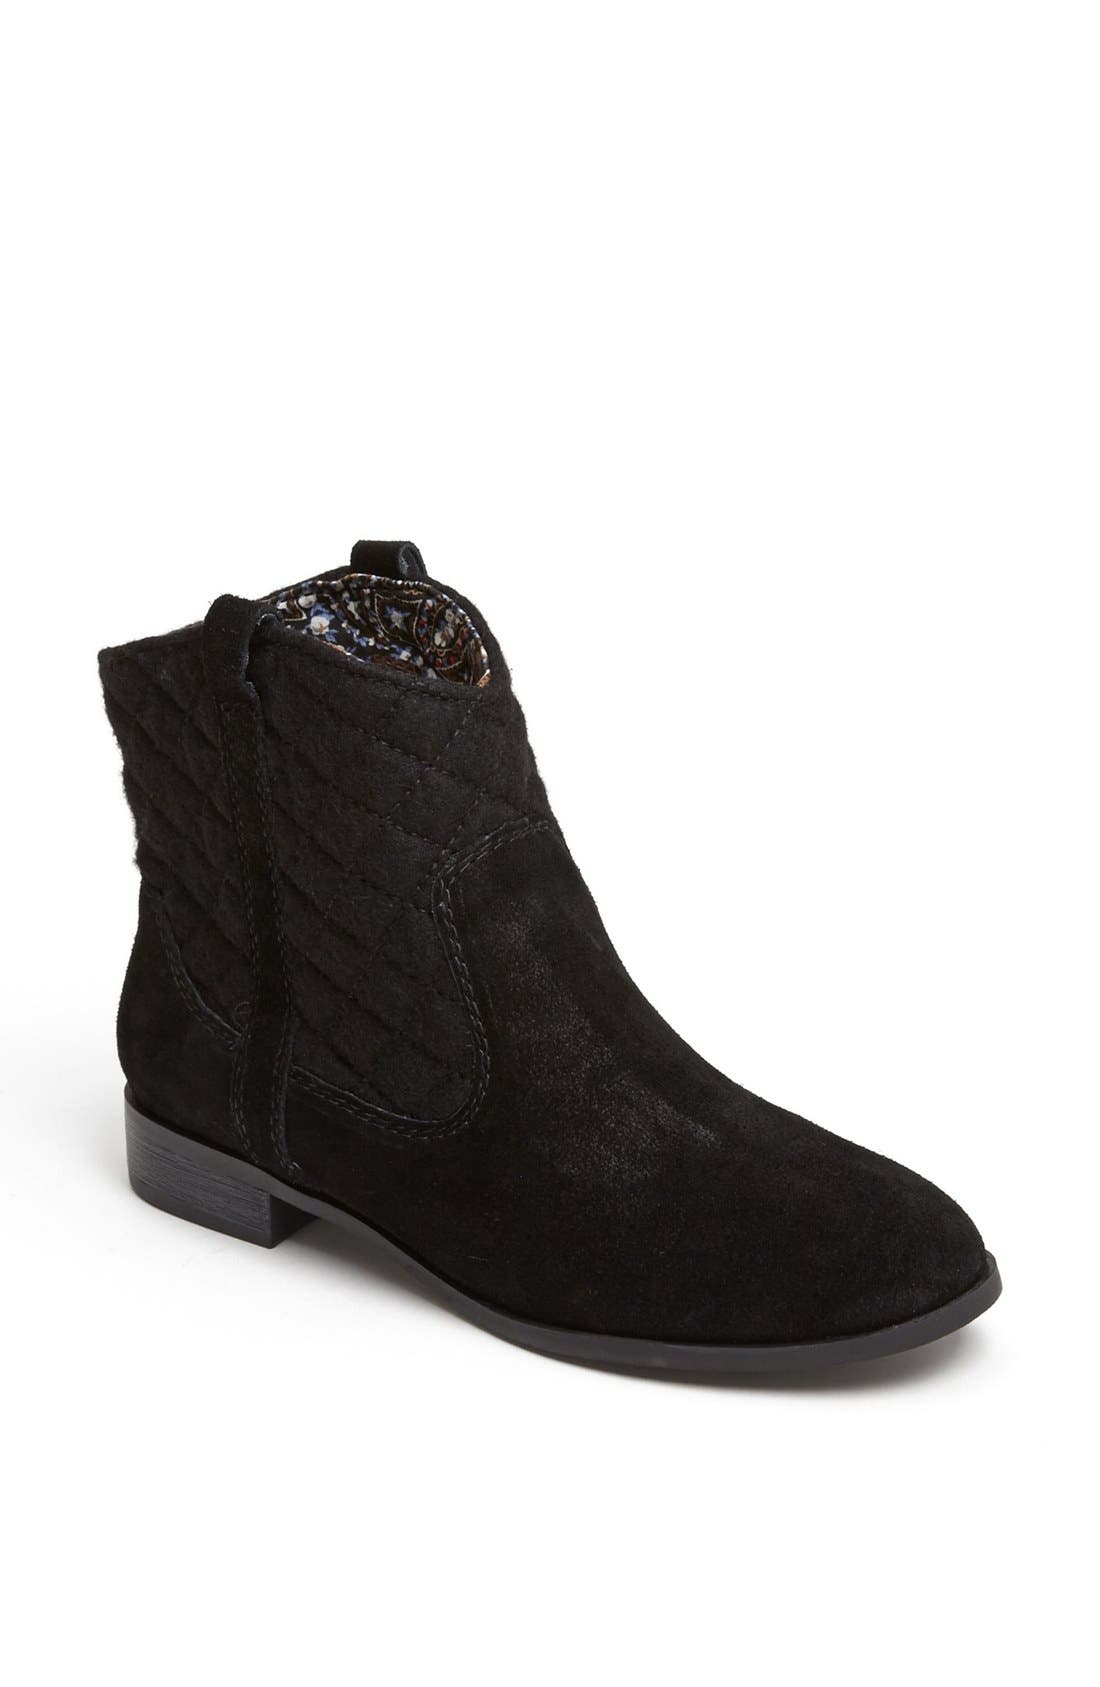 Alternate Image 1 Selected - BC Footwear 'Bad to the Bone' Boot